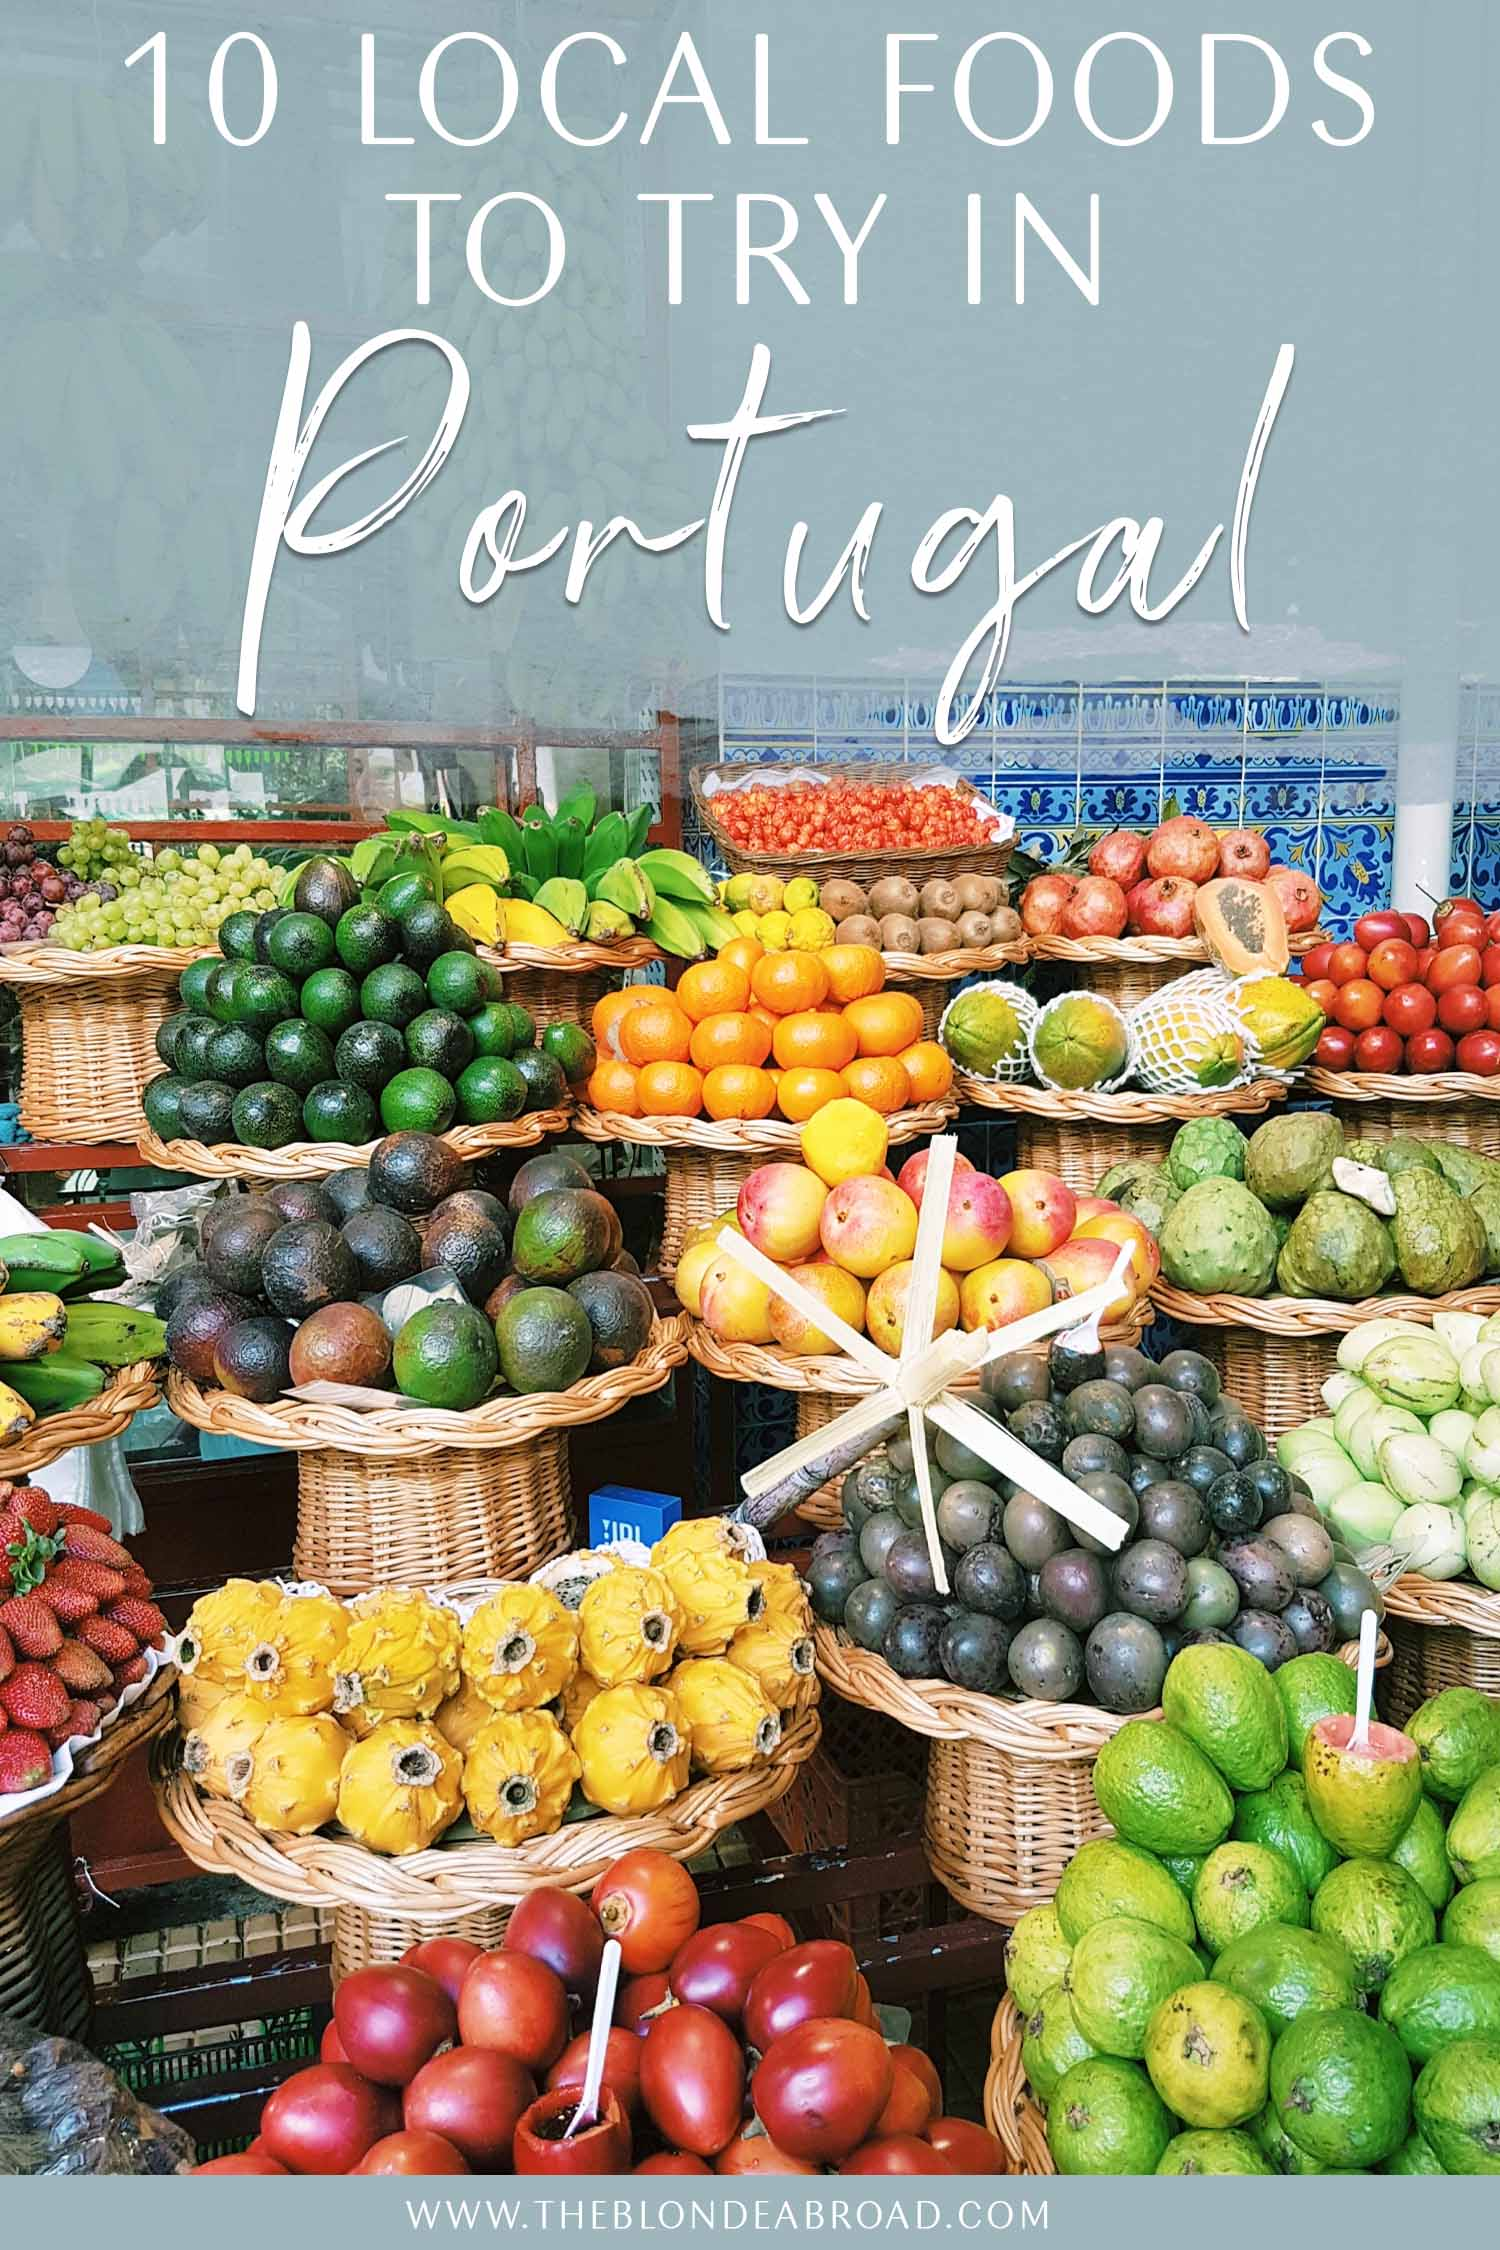 Local food to try in Portugal